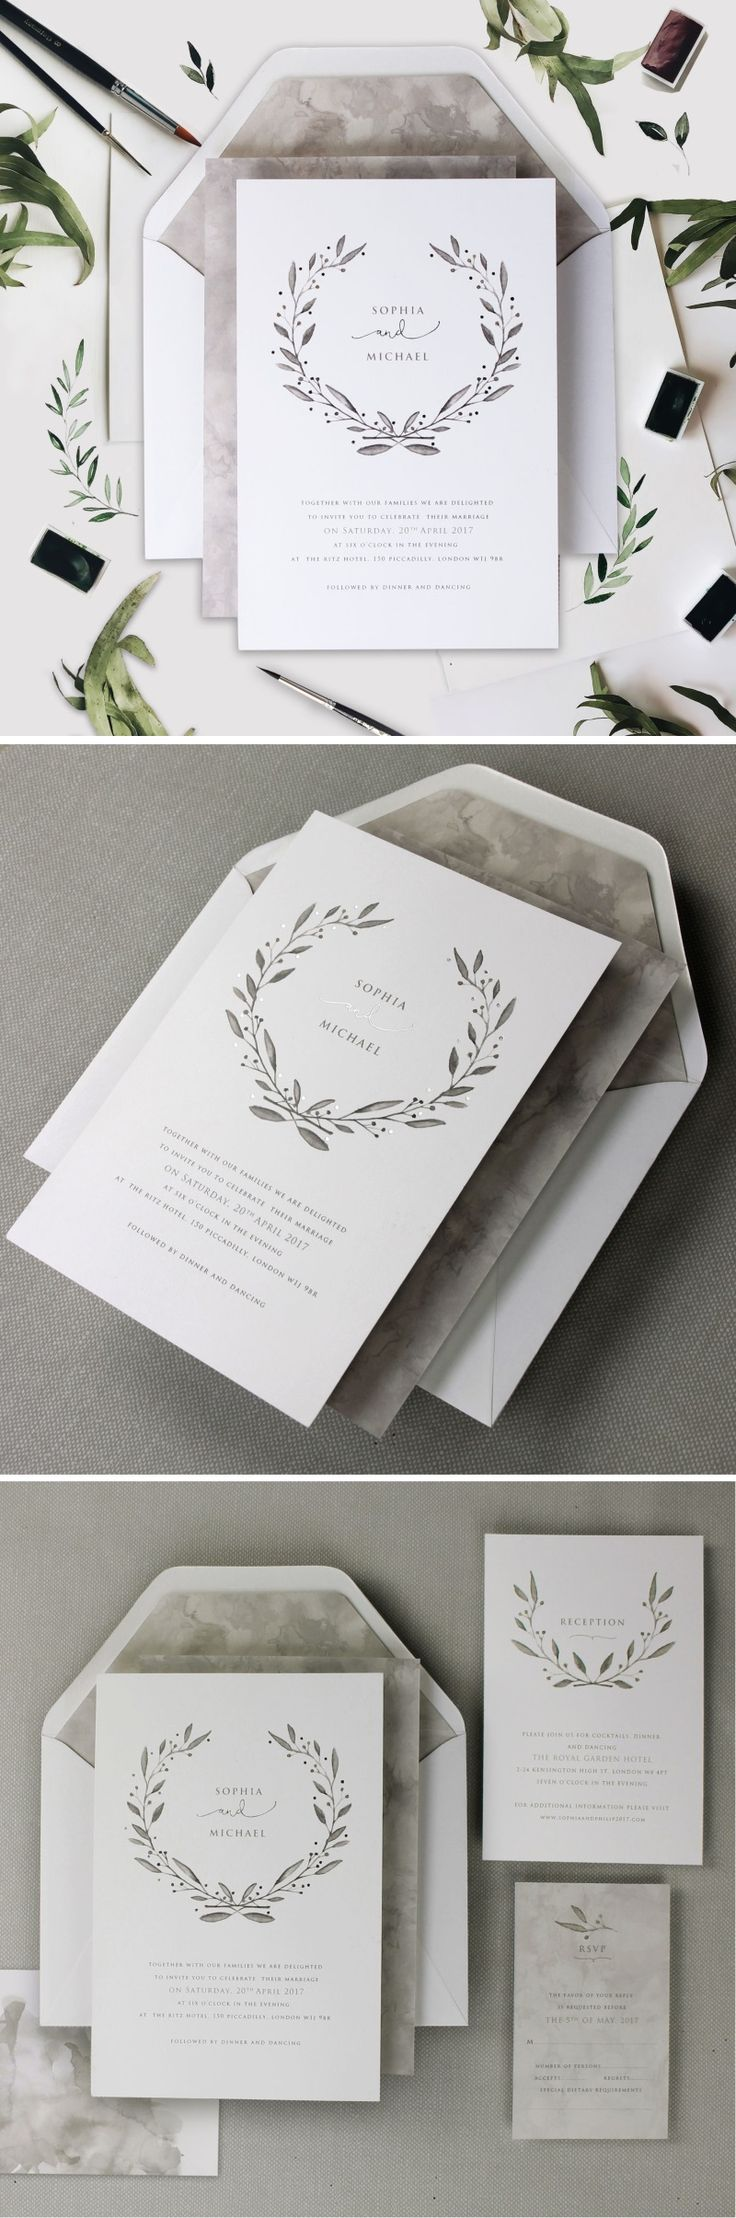 wedding invitations from michaels crafts%0A    best Grey Weddings images on Pinterest   Wedding gown lace  Winter barn  weddings and Bridal flowers